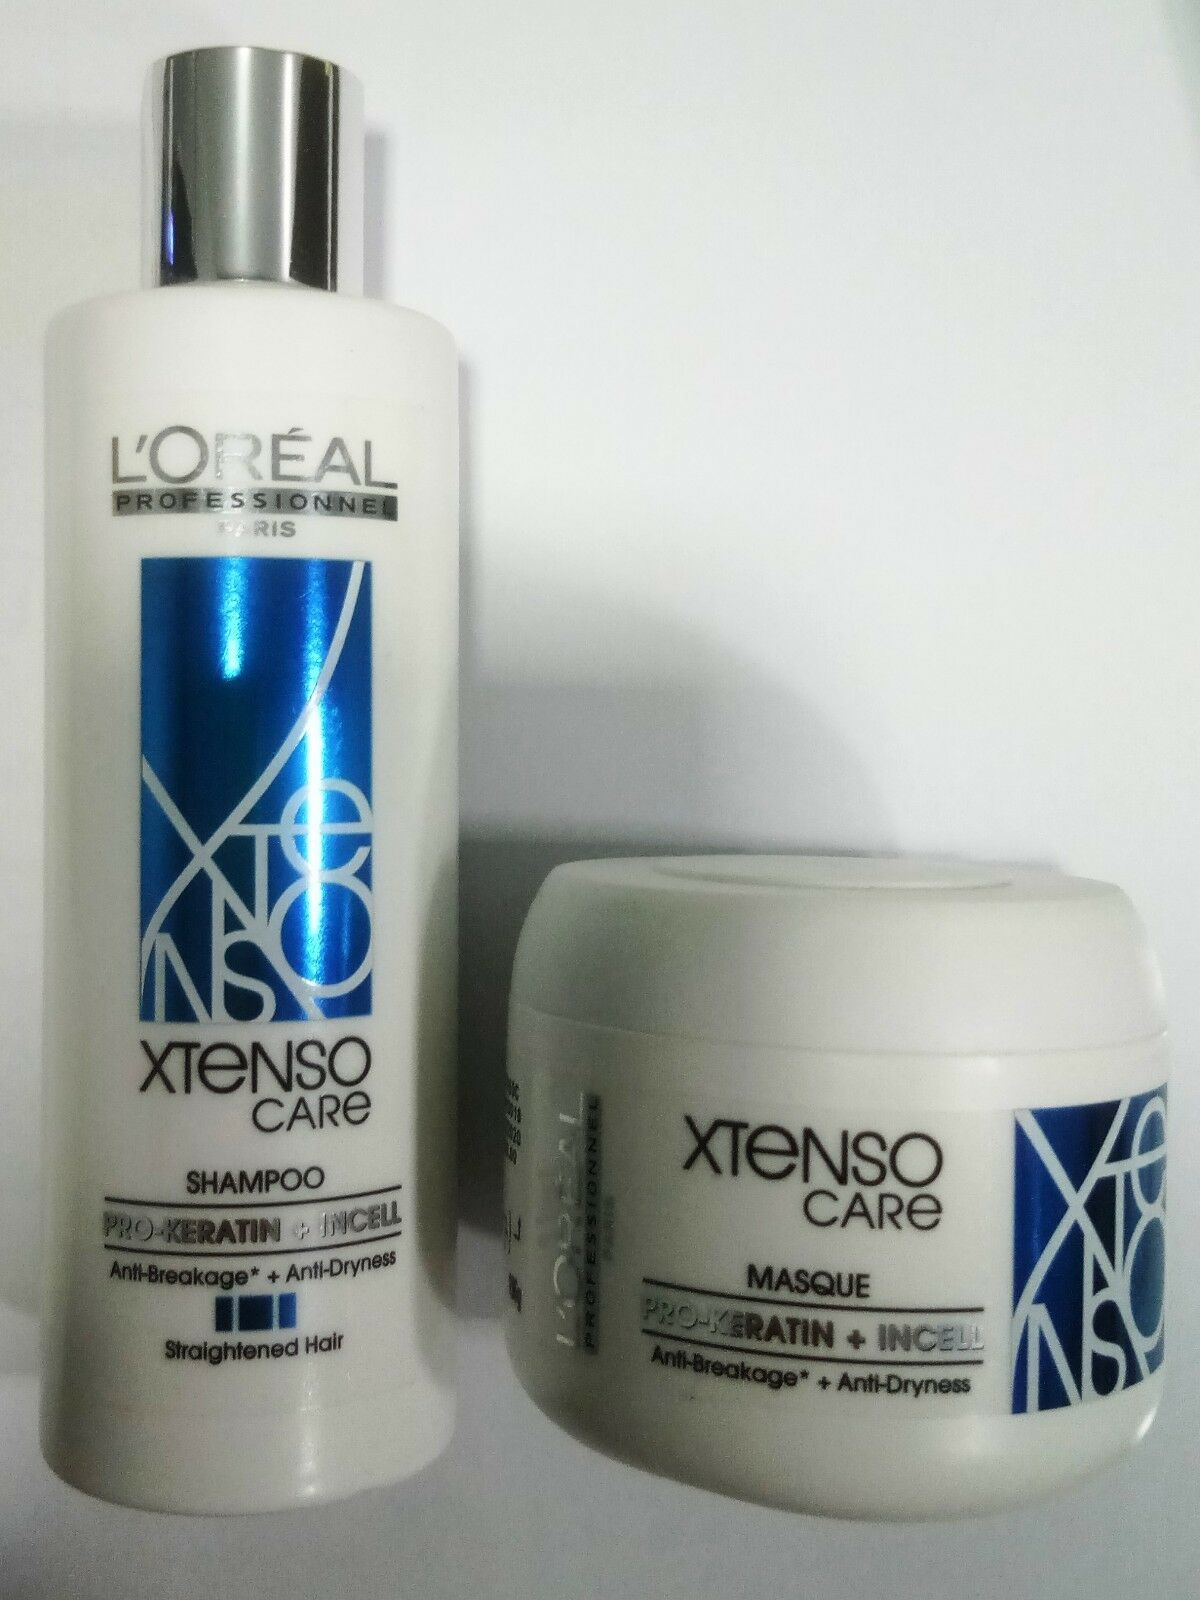 Primary image for Loreal Professionnel Xtenso Care Straight Shampoo 250 ml + Masque 196 gm